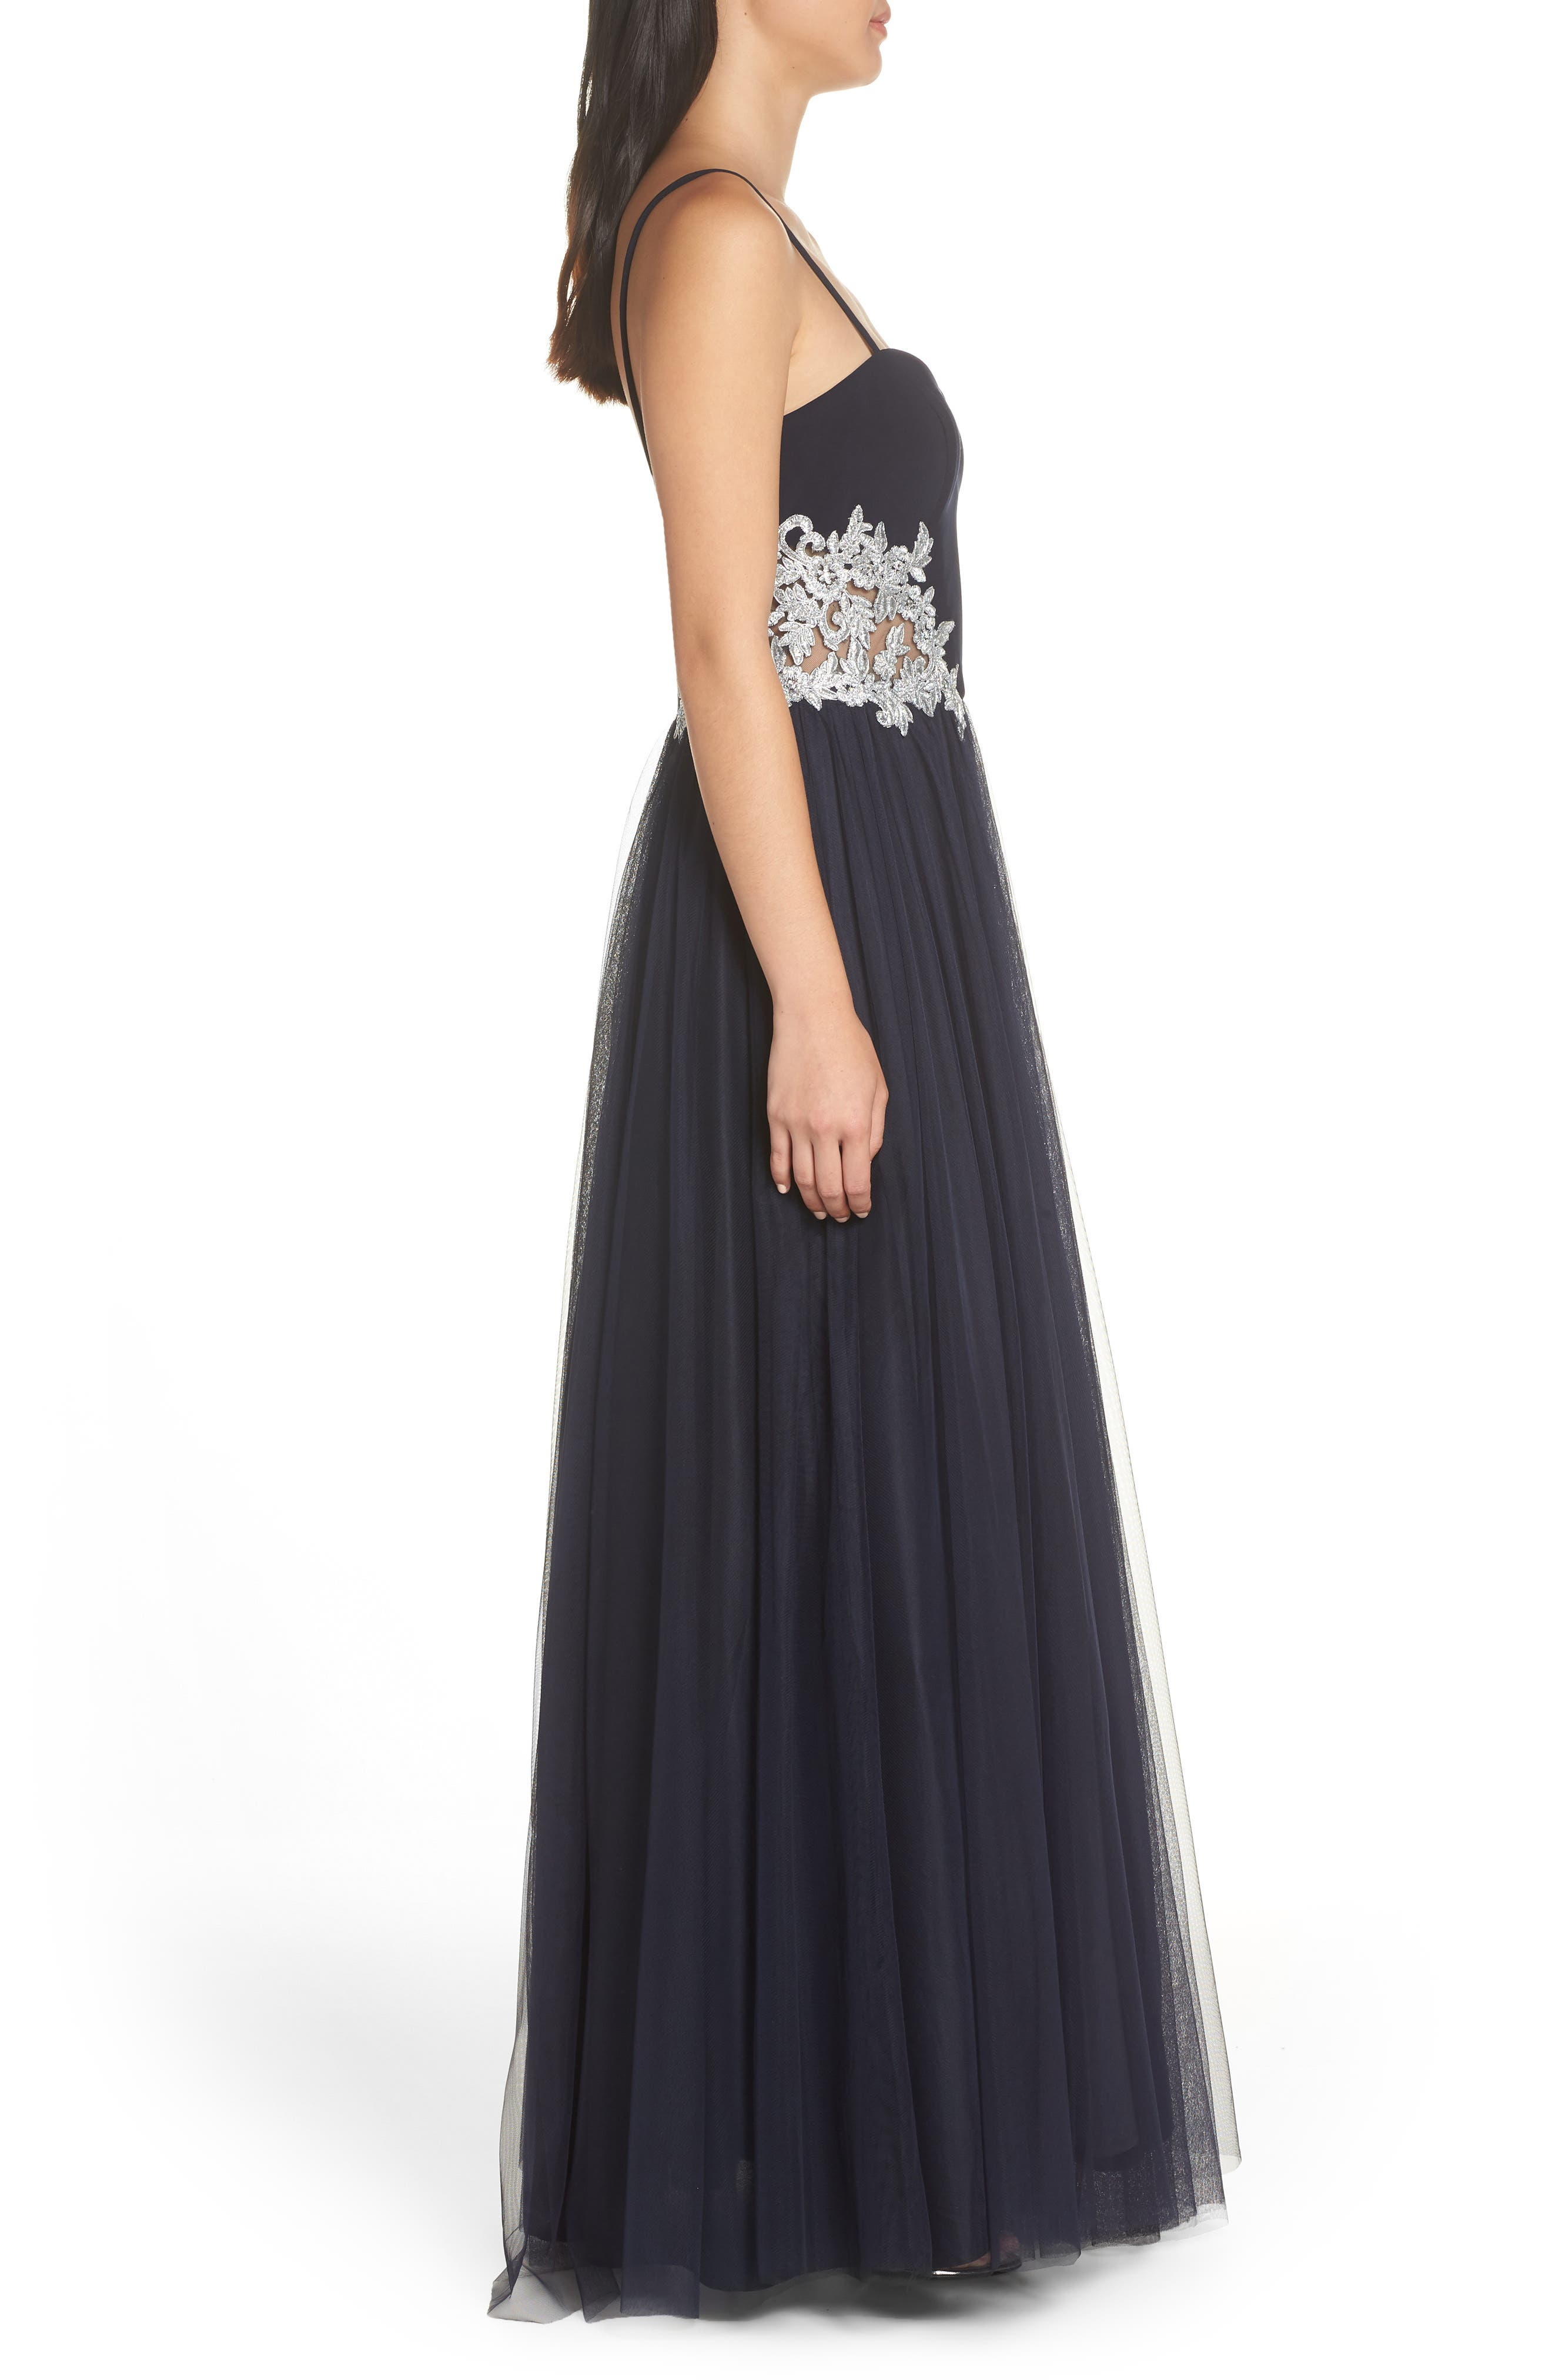 Blondie Nights Embellished Tulle Gown,                             Alternate thumbnail 3, color,                             NAVY/ SILVER